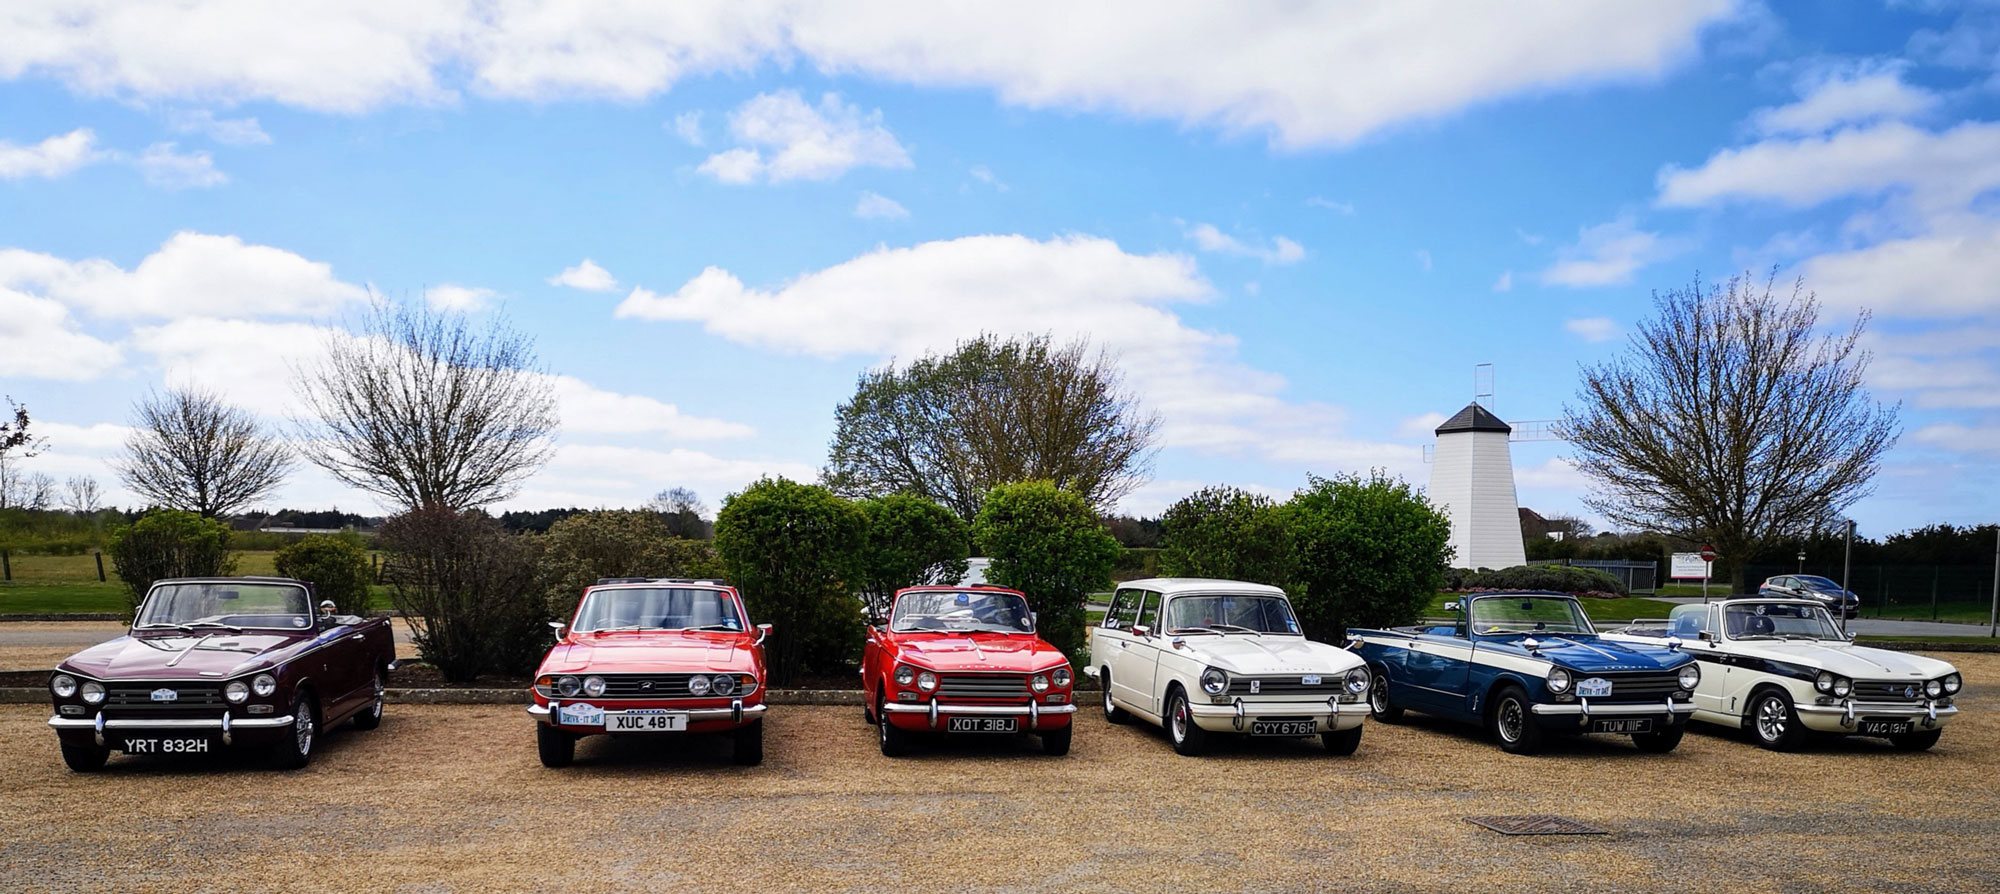 Your Drive It Day Photos 2021